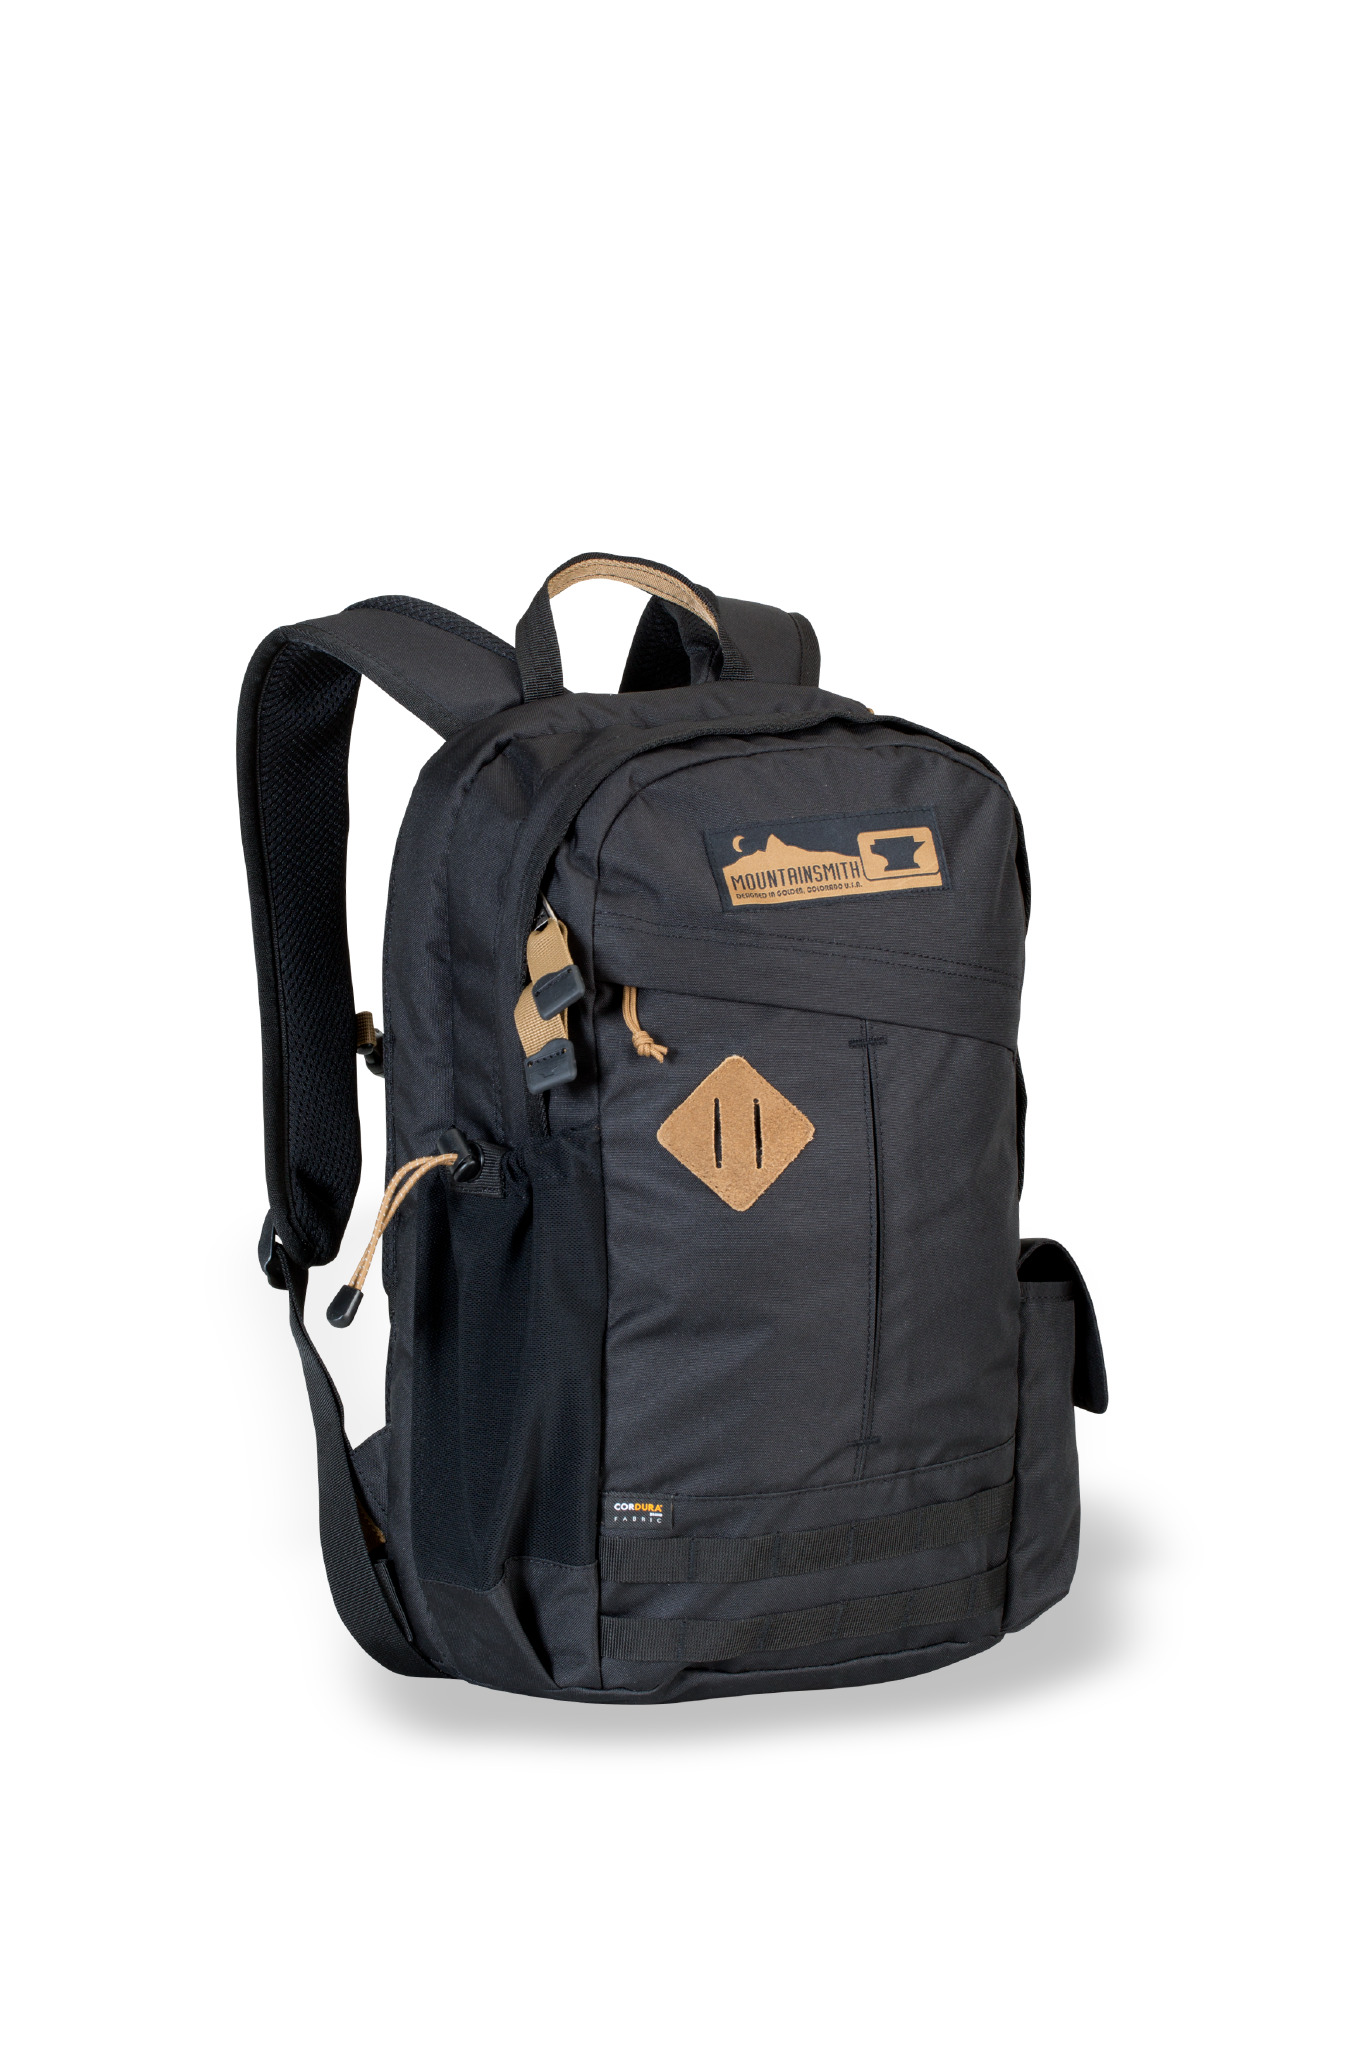 190c146a96b Mountainsmith Divide Backpack 15L with Free S&H — CampSaver